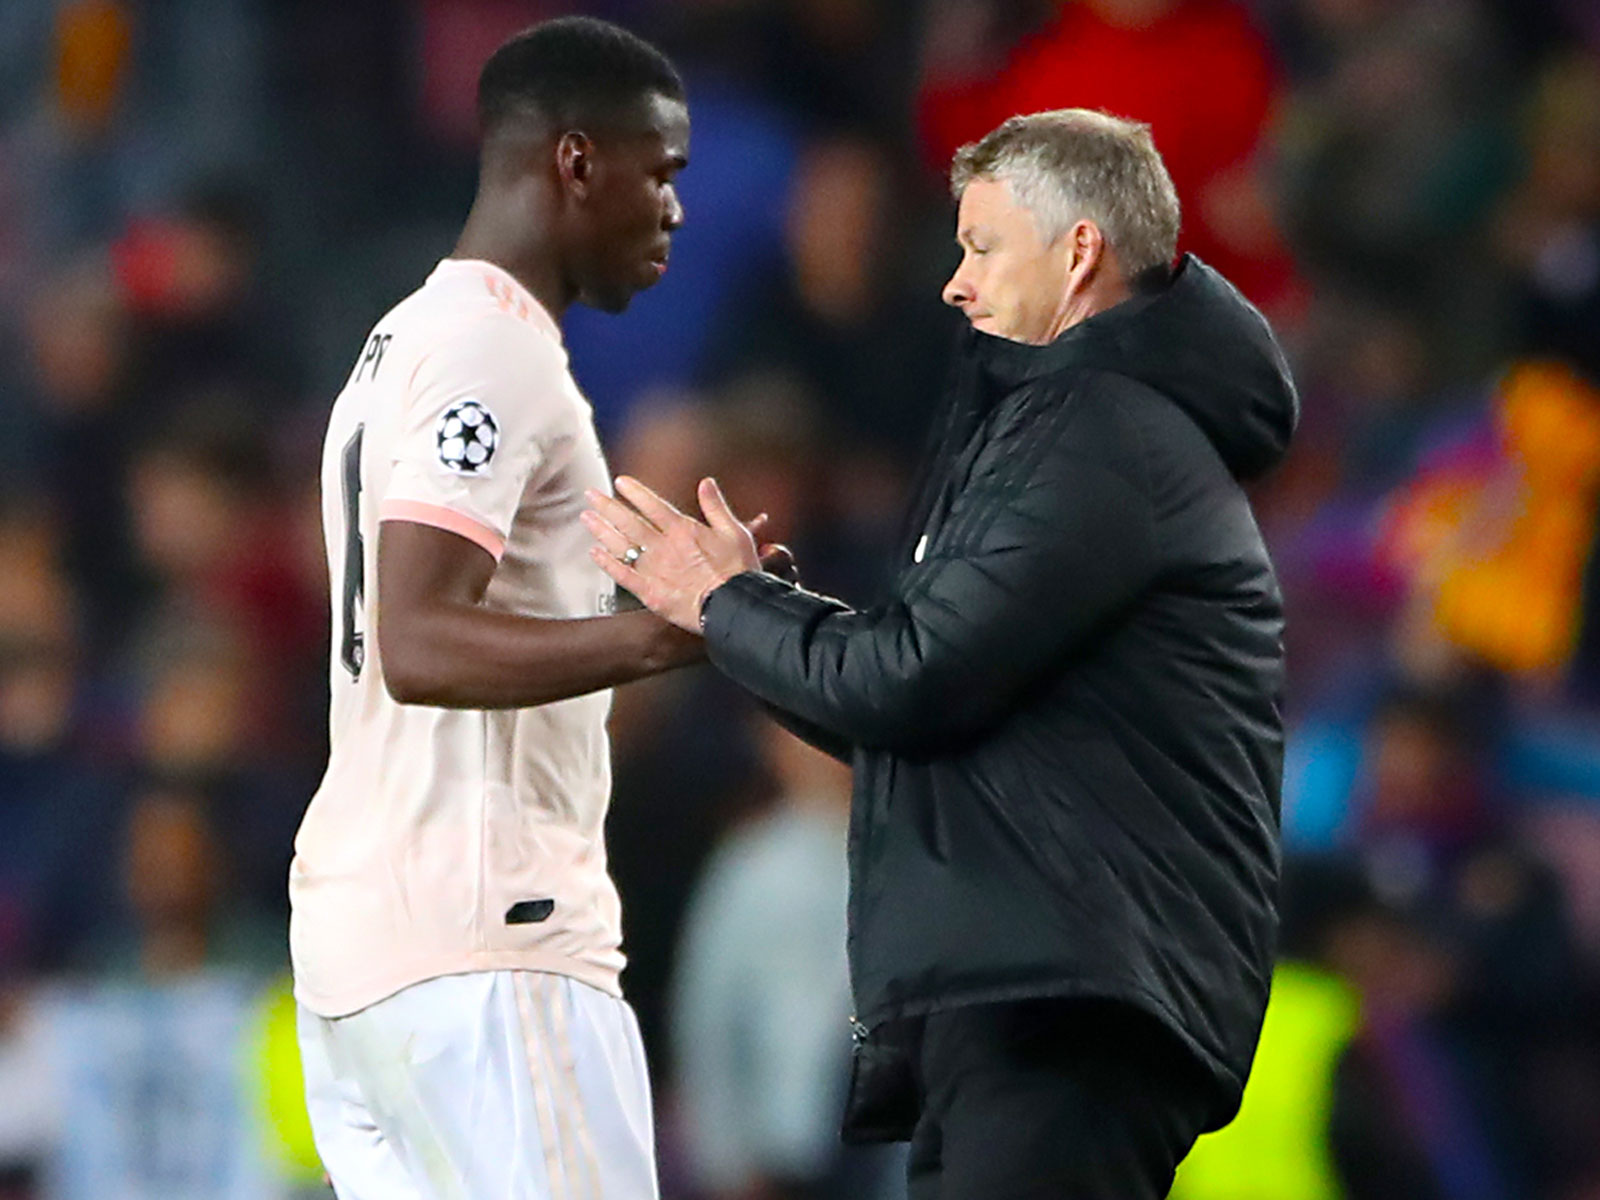 Paul Pogba and Ole Gunnar Solskjaer during Man United's loss to Barcelona